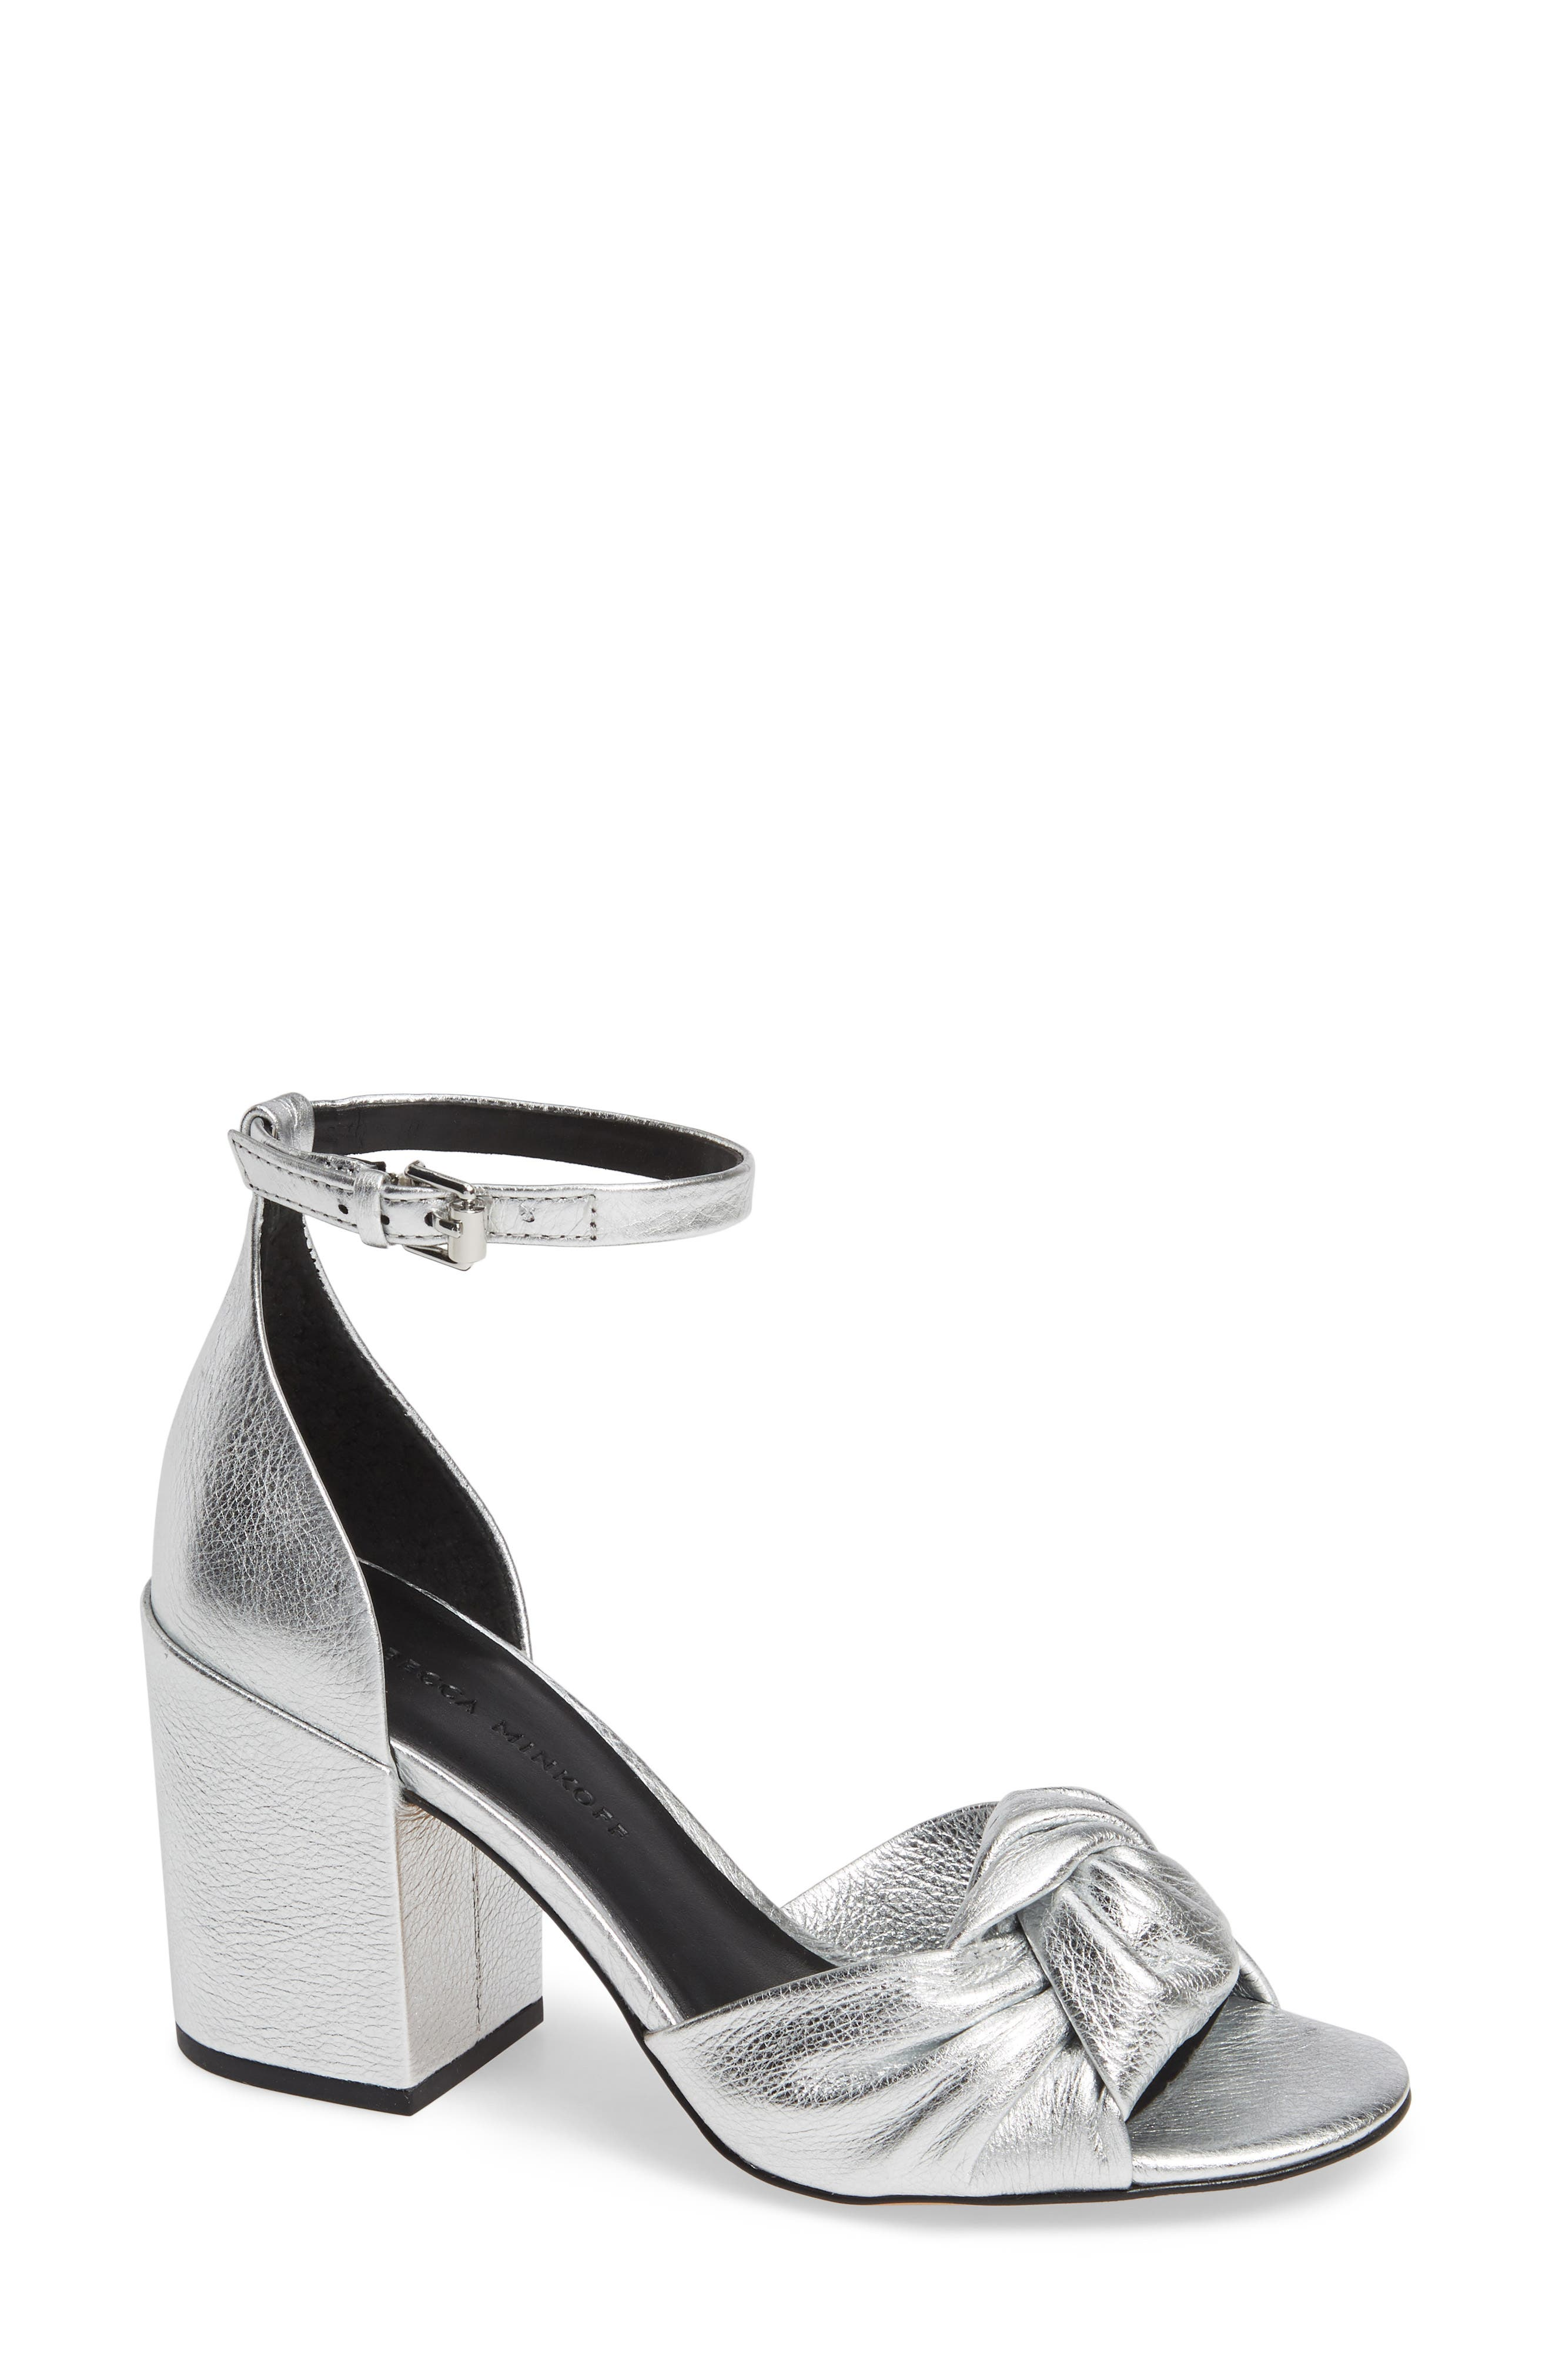 REBECCA MINKOFF, Capriana Ankle Strap Sandal, Main thumbnail 1, color, SILVER LEATHER